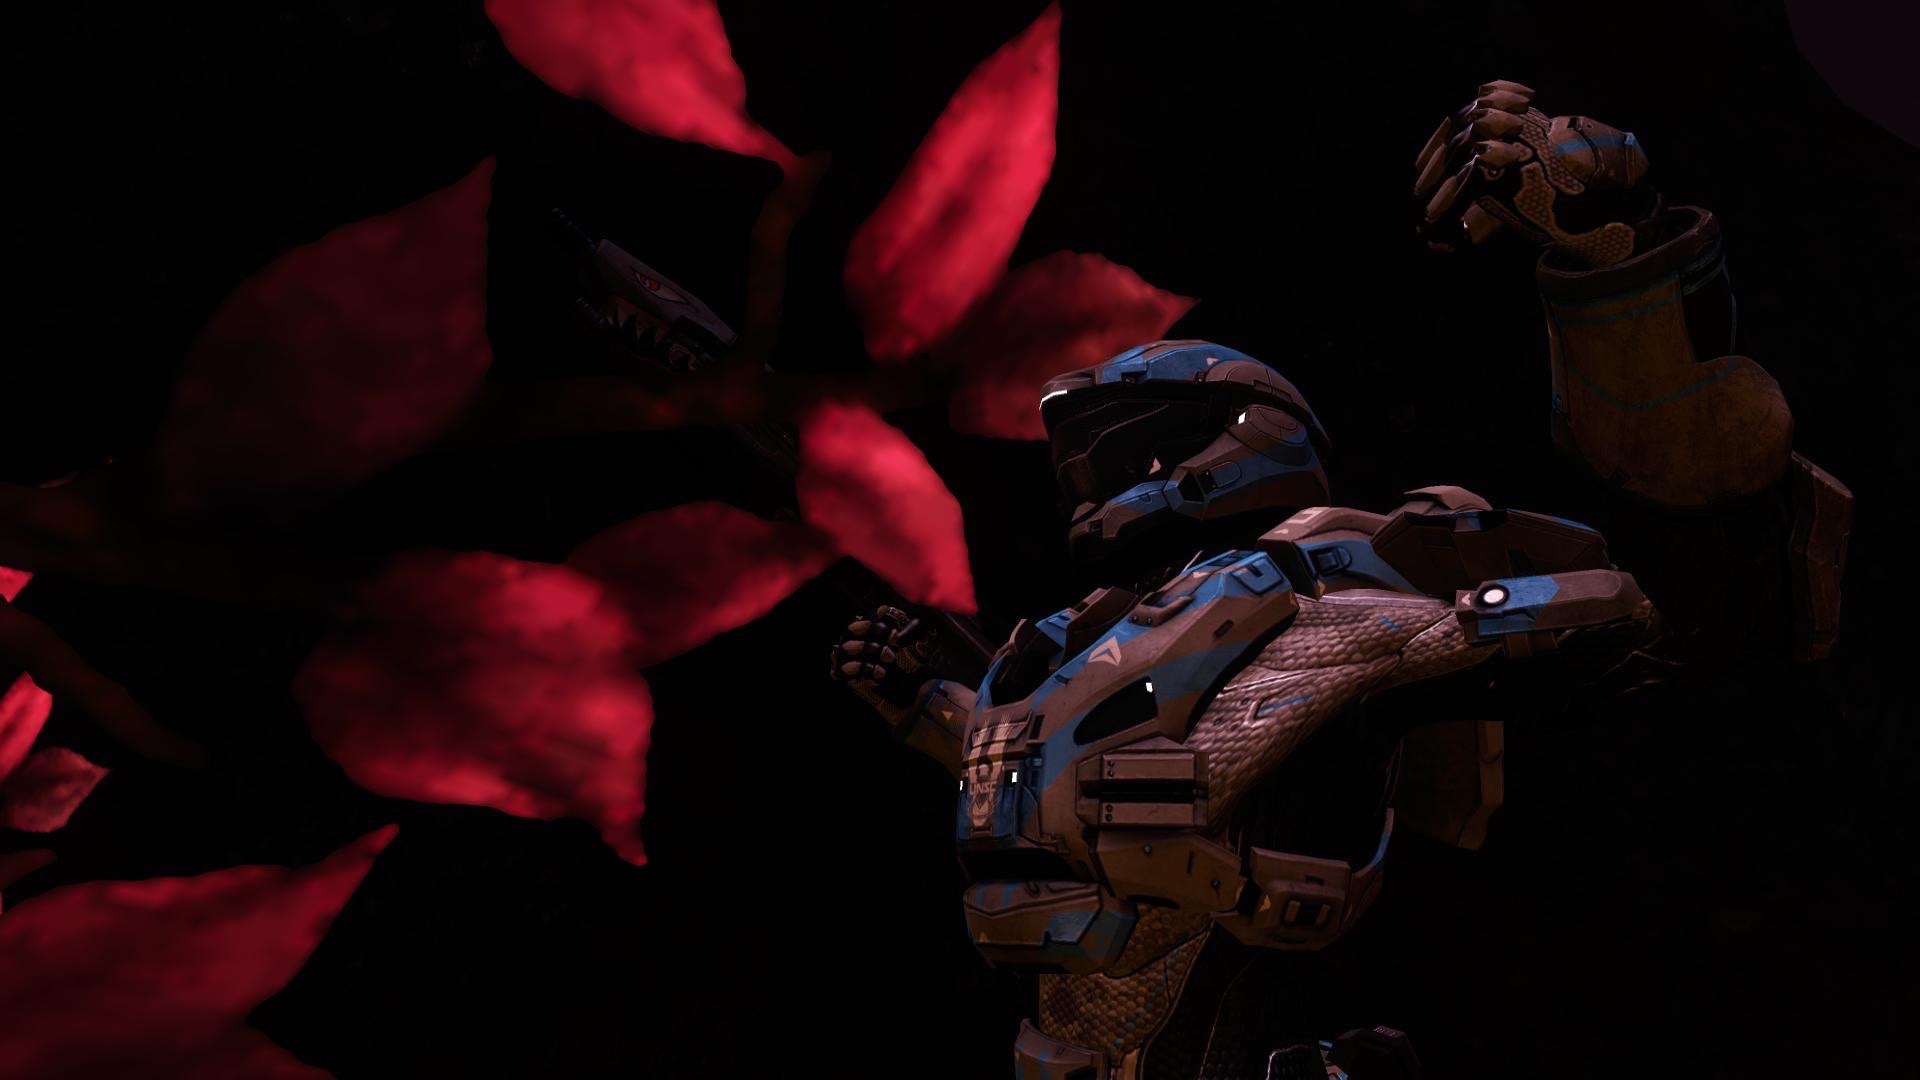 fotu_Halo4_screenshots_113